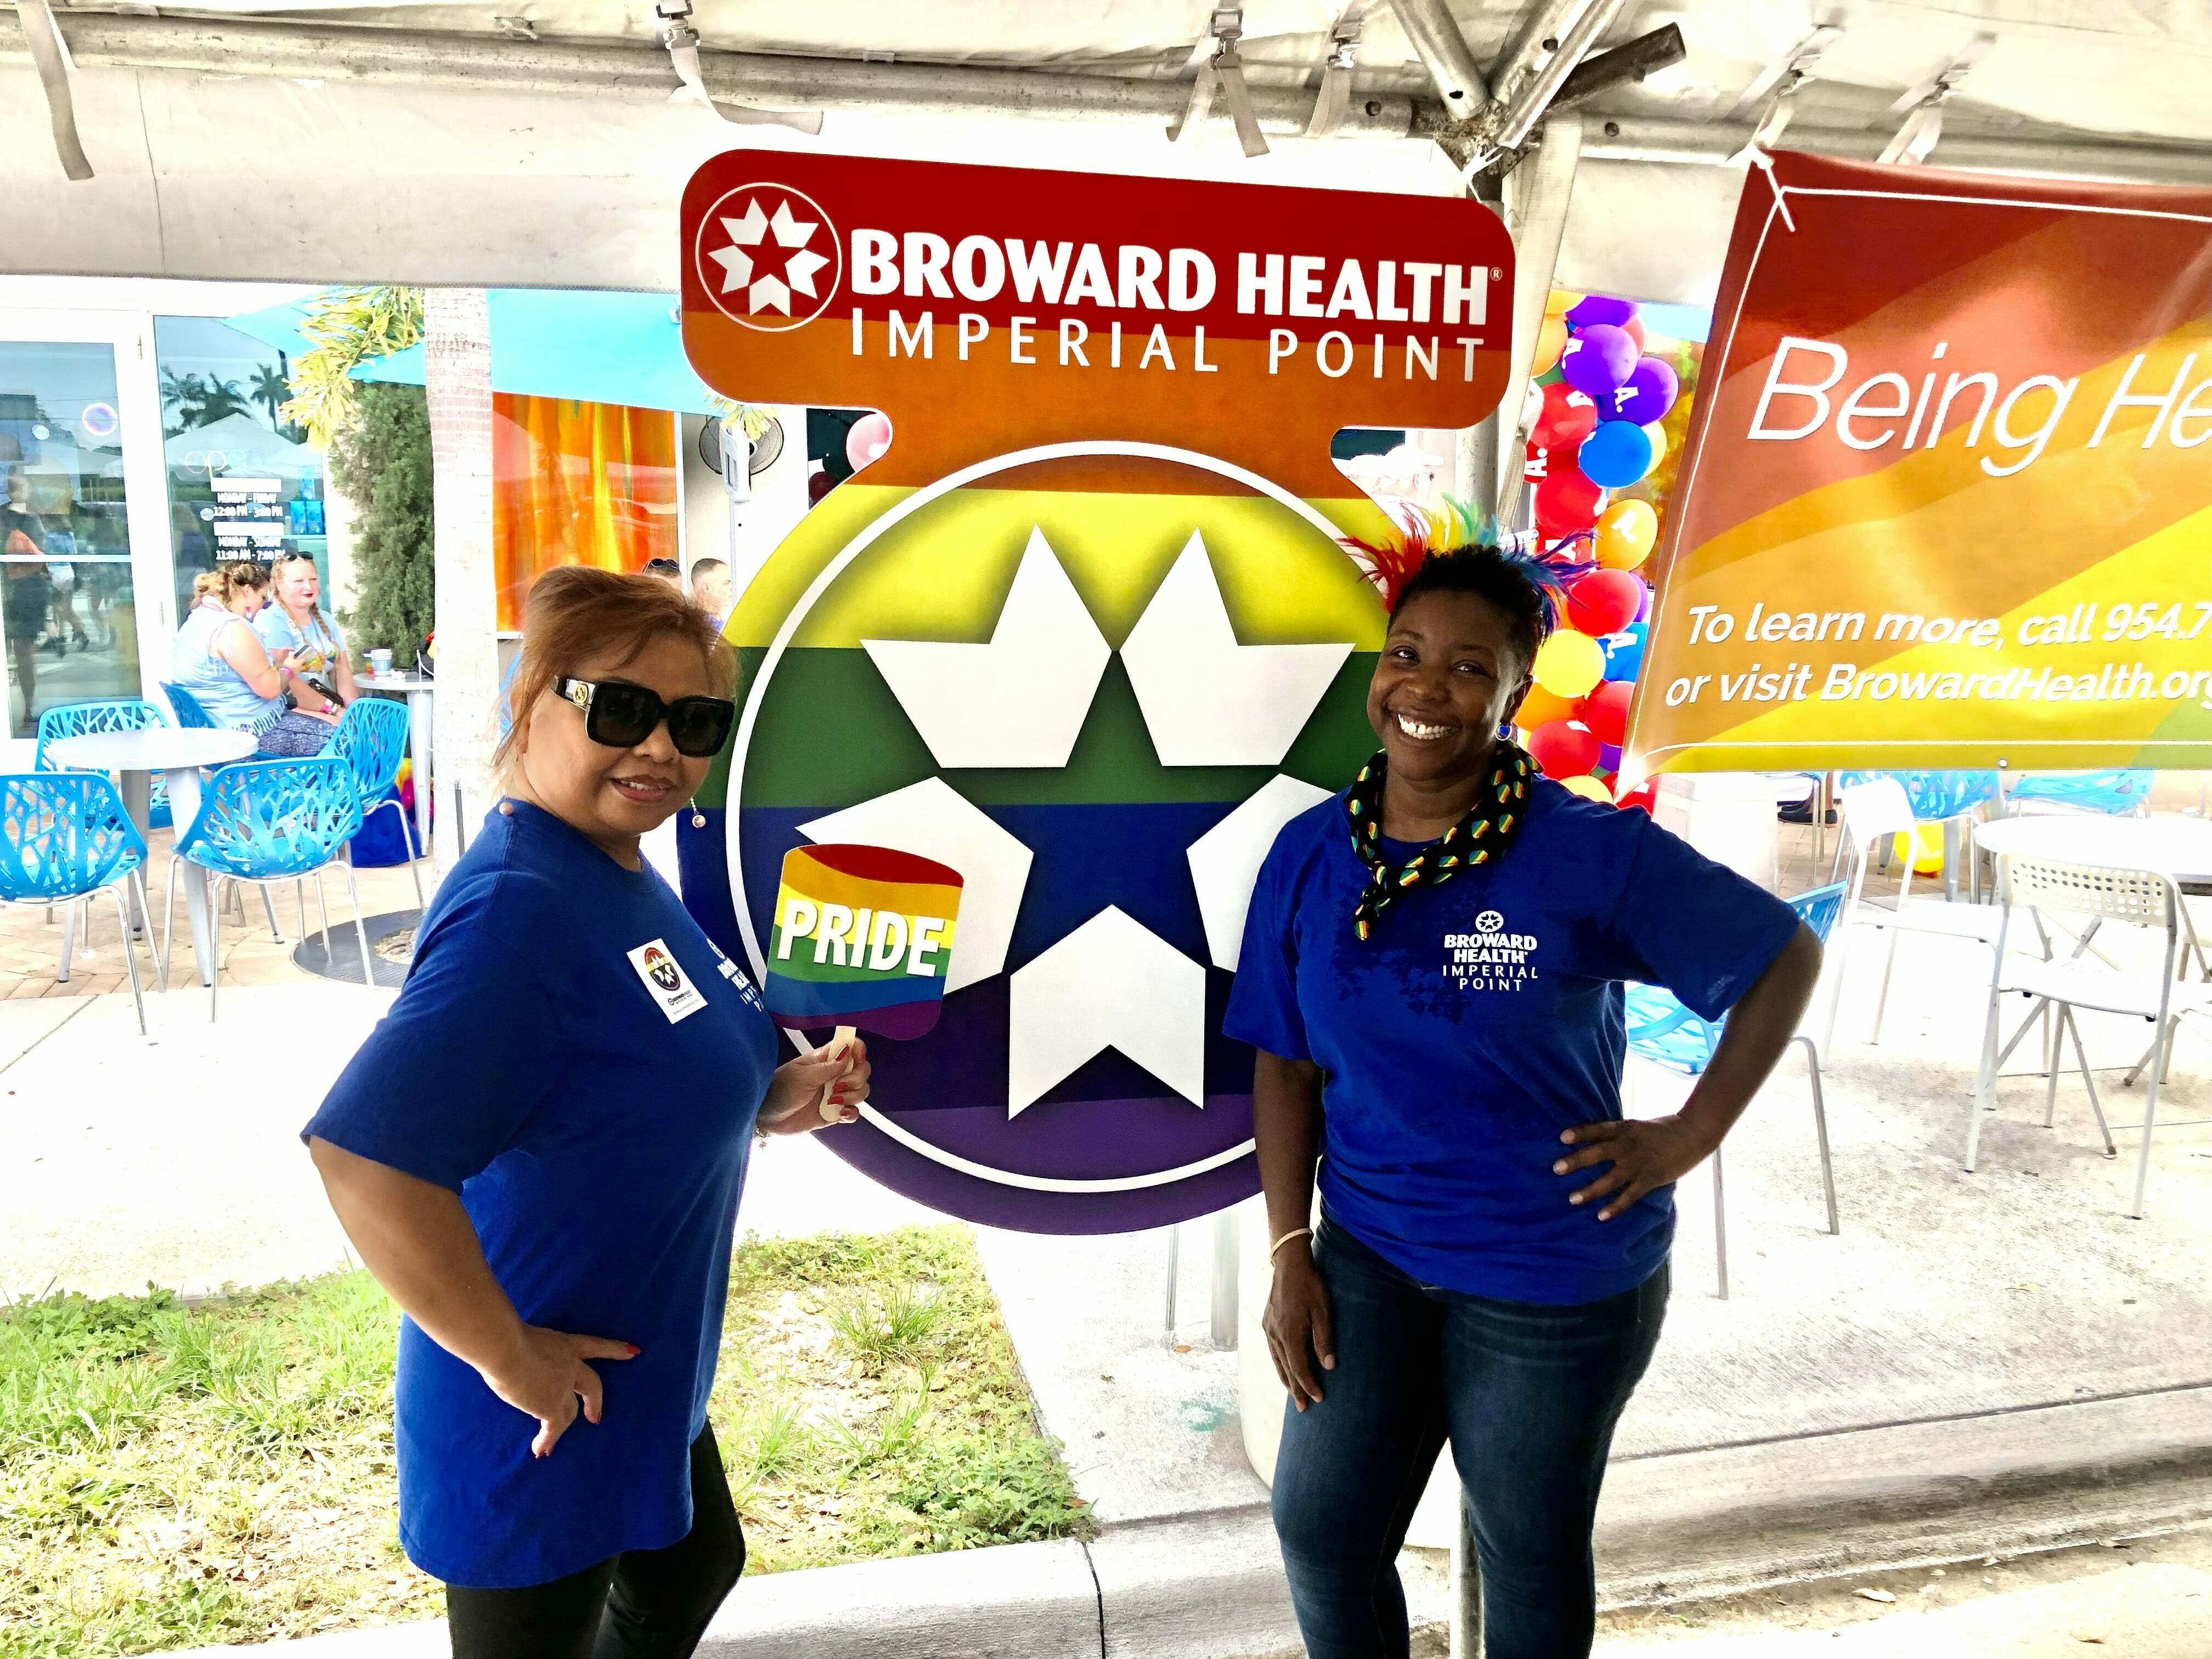 You are currently viewing Broward Health Imperial Point Supports LGBTQ+ Community at Stonewall Pride Parade and Street Festival